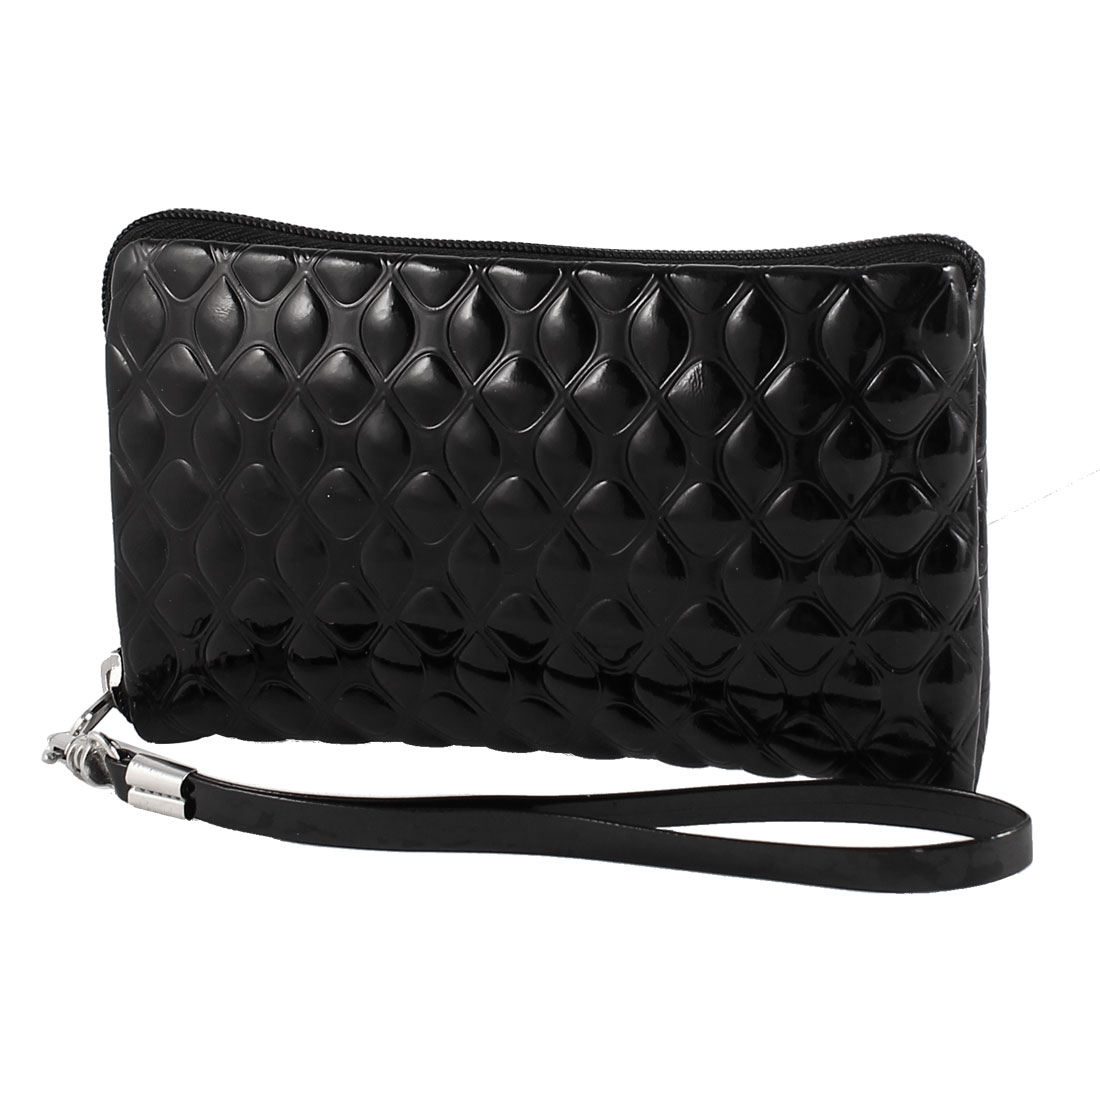 Black Faux Leather Zip Up Detachable Strap Pouch Purse Bag Holder